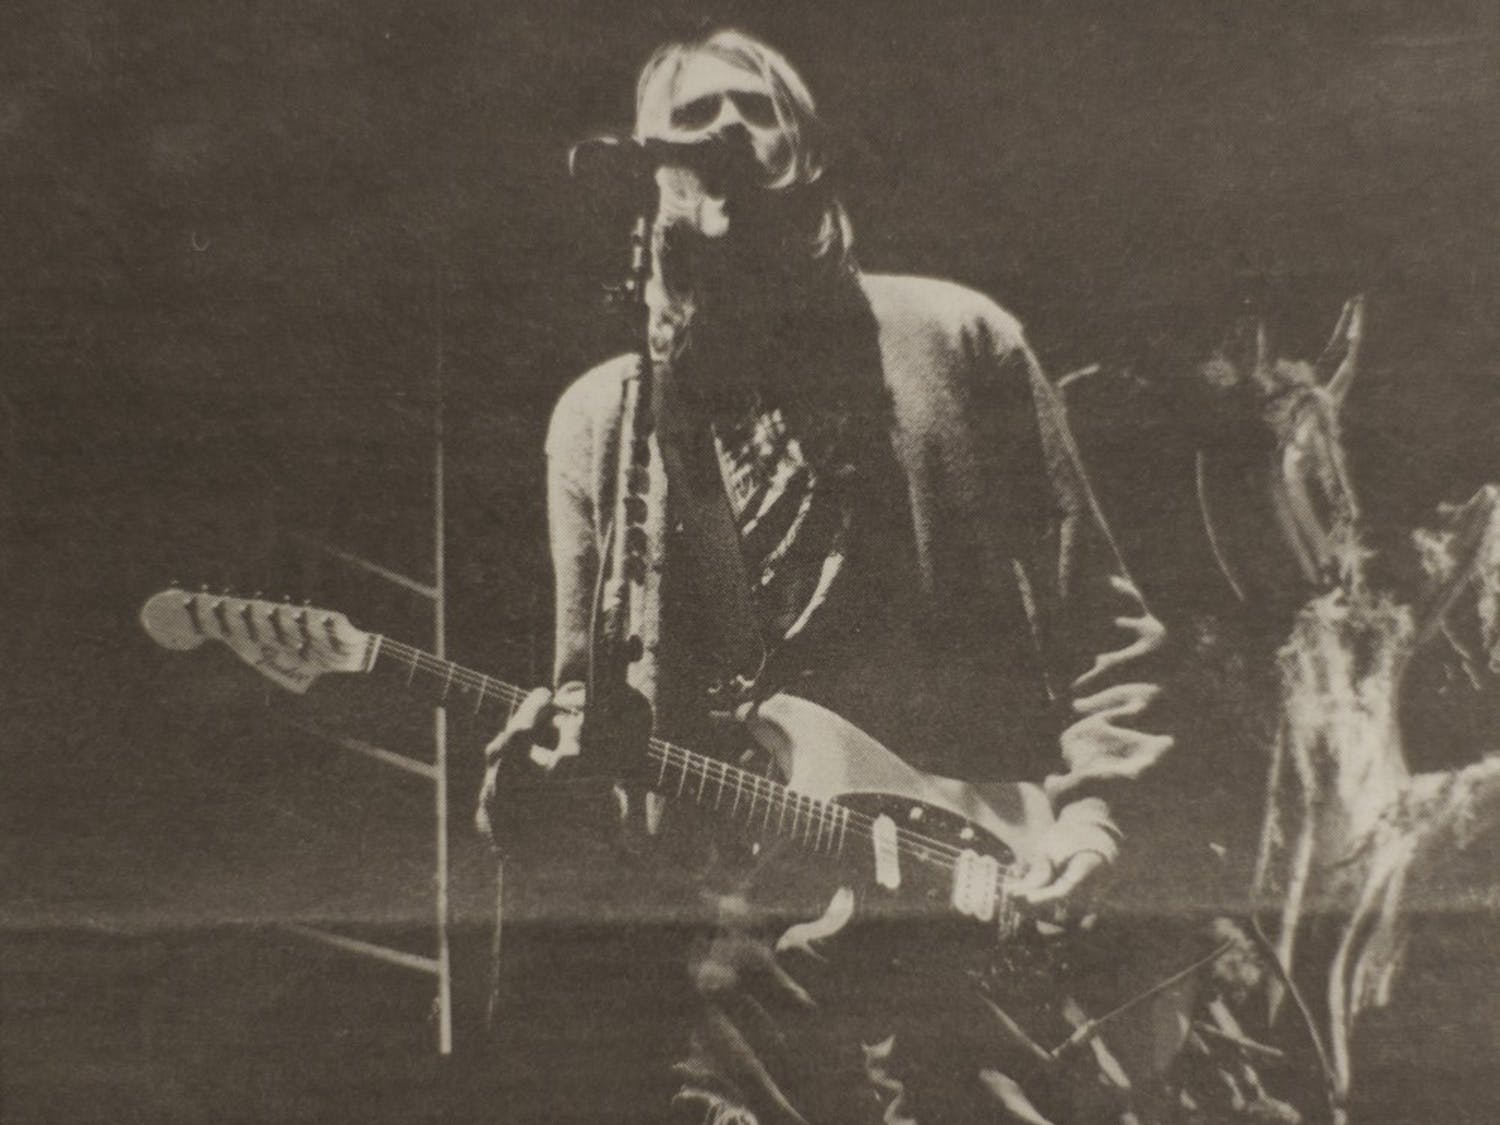 Kurt Cobain shreds in front of 7,000 fans at Alumni Arena in 1993. Cobain and his band Nirvana played a sold-out show at UB 25 years ago today, and students brought them here.